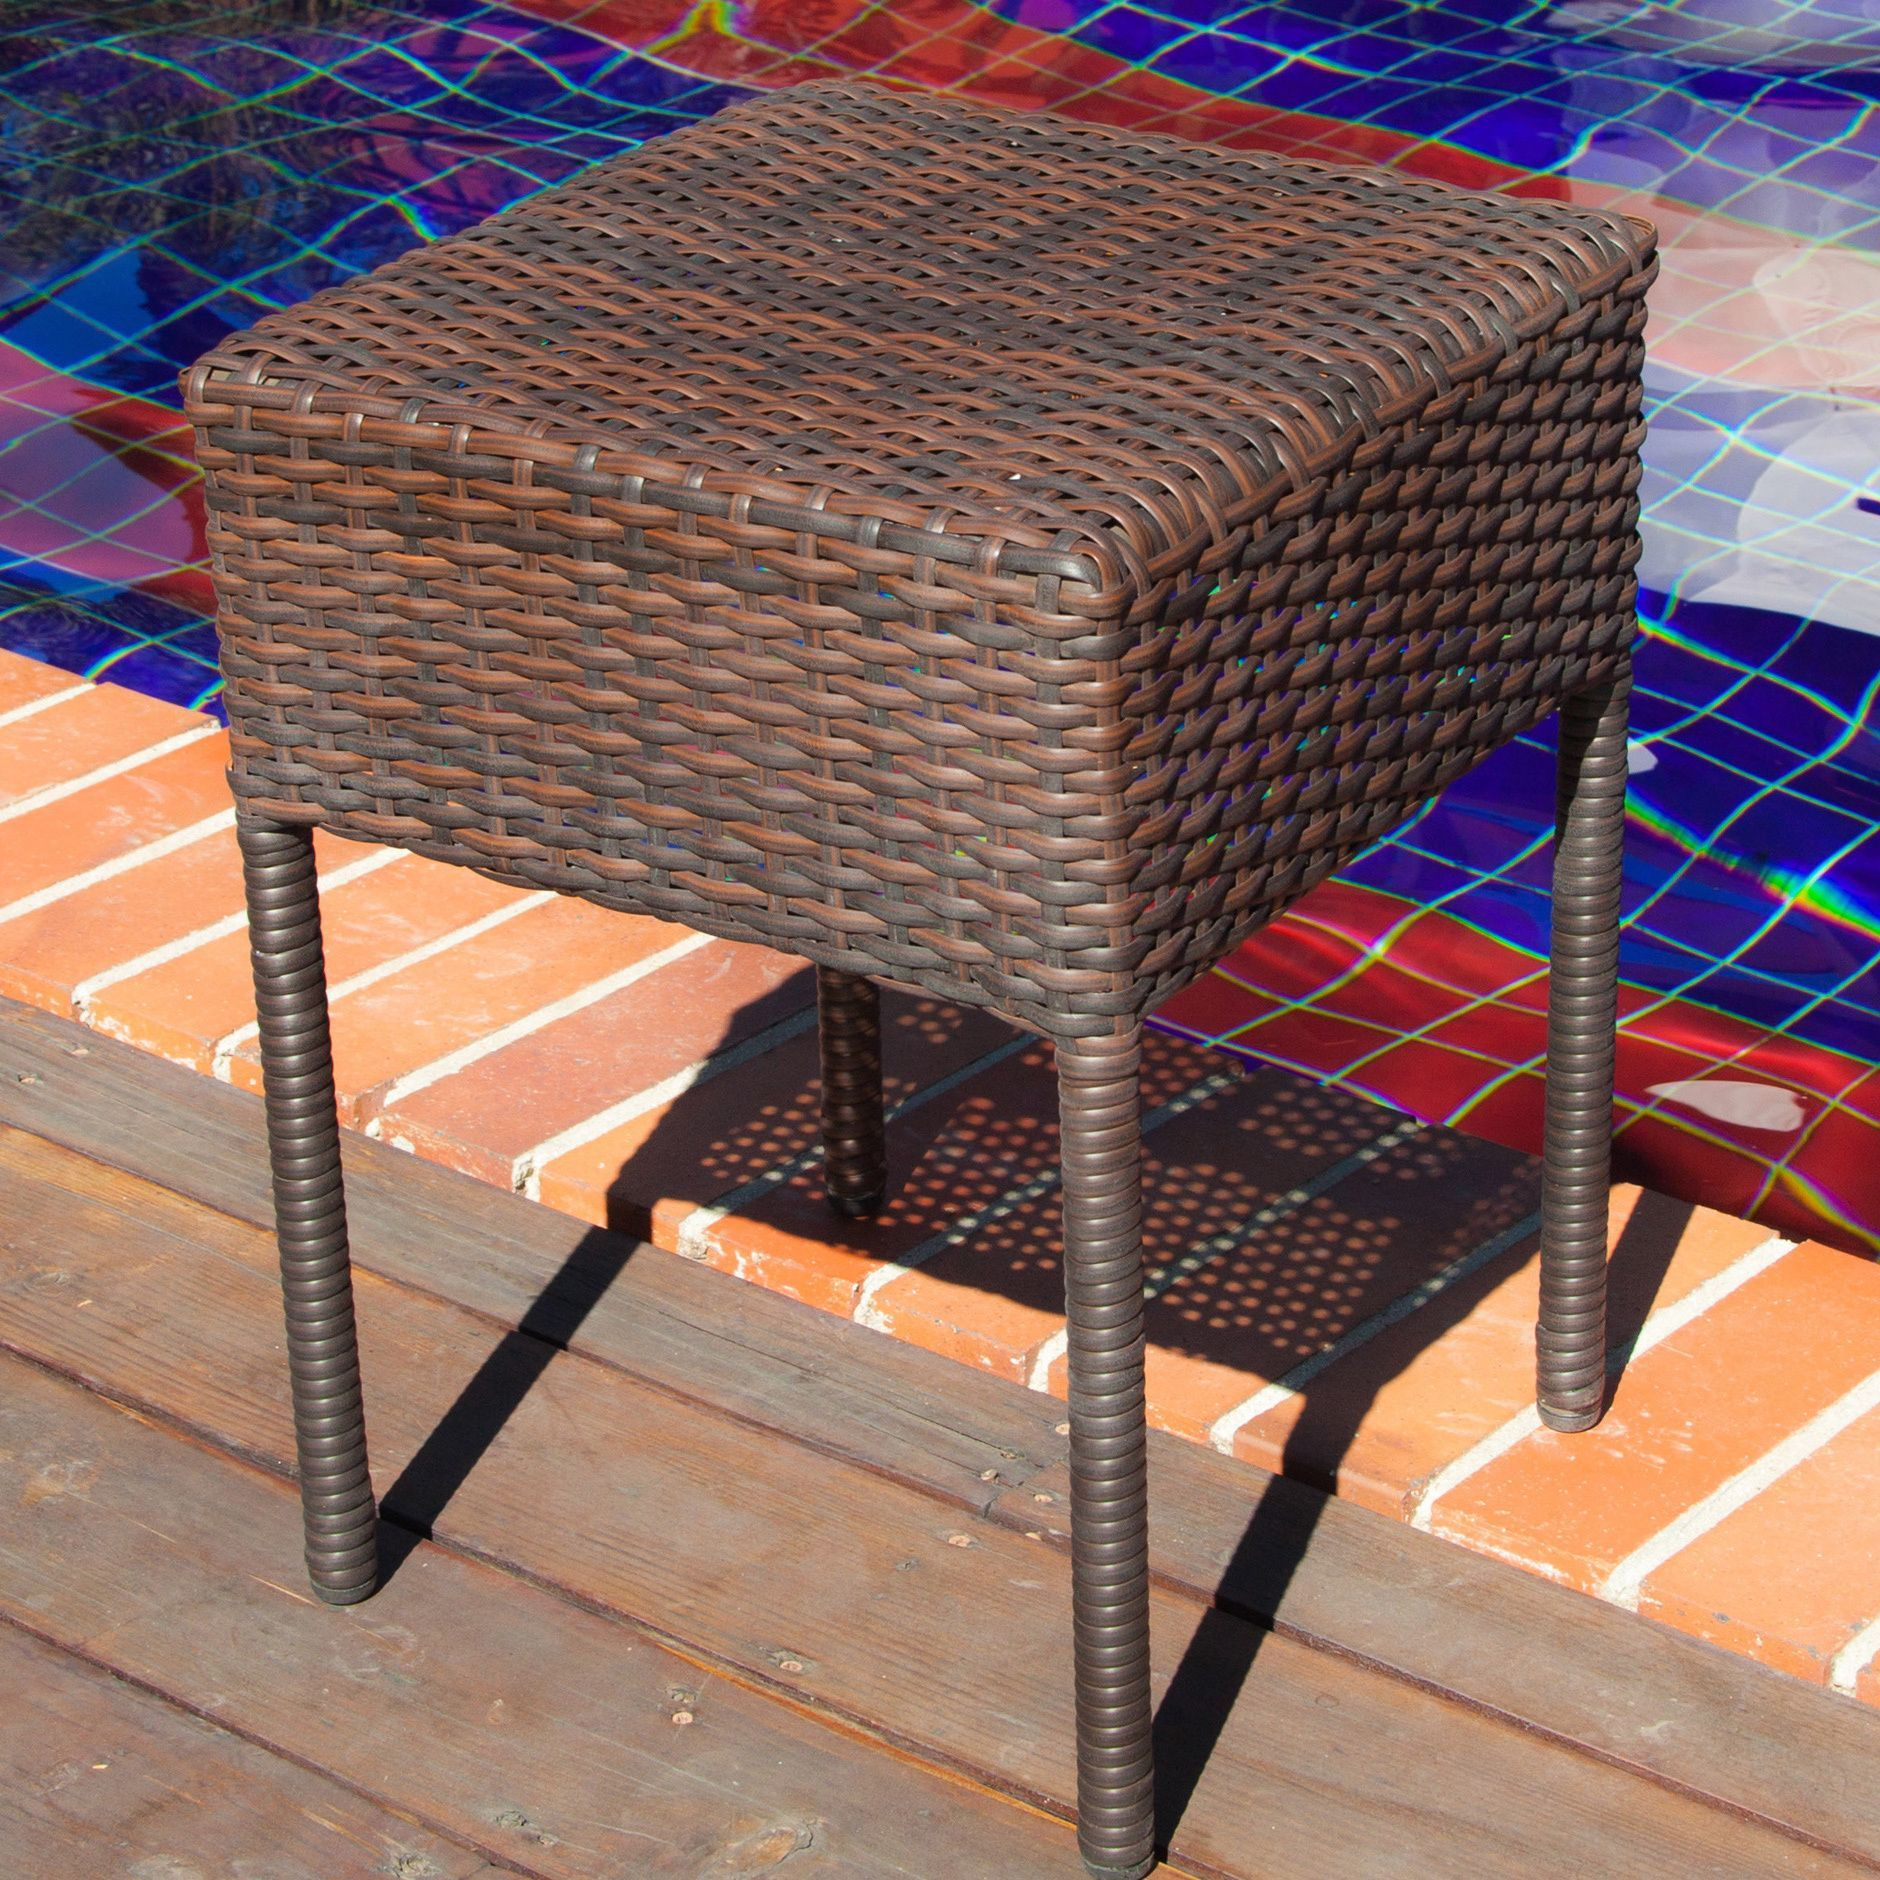 Sa Wicker Outdoor Side Table Black Accent Patio Furniture Iron